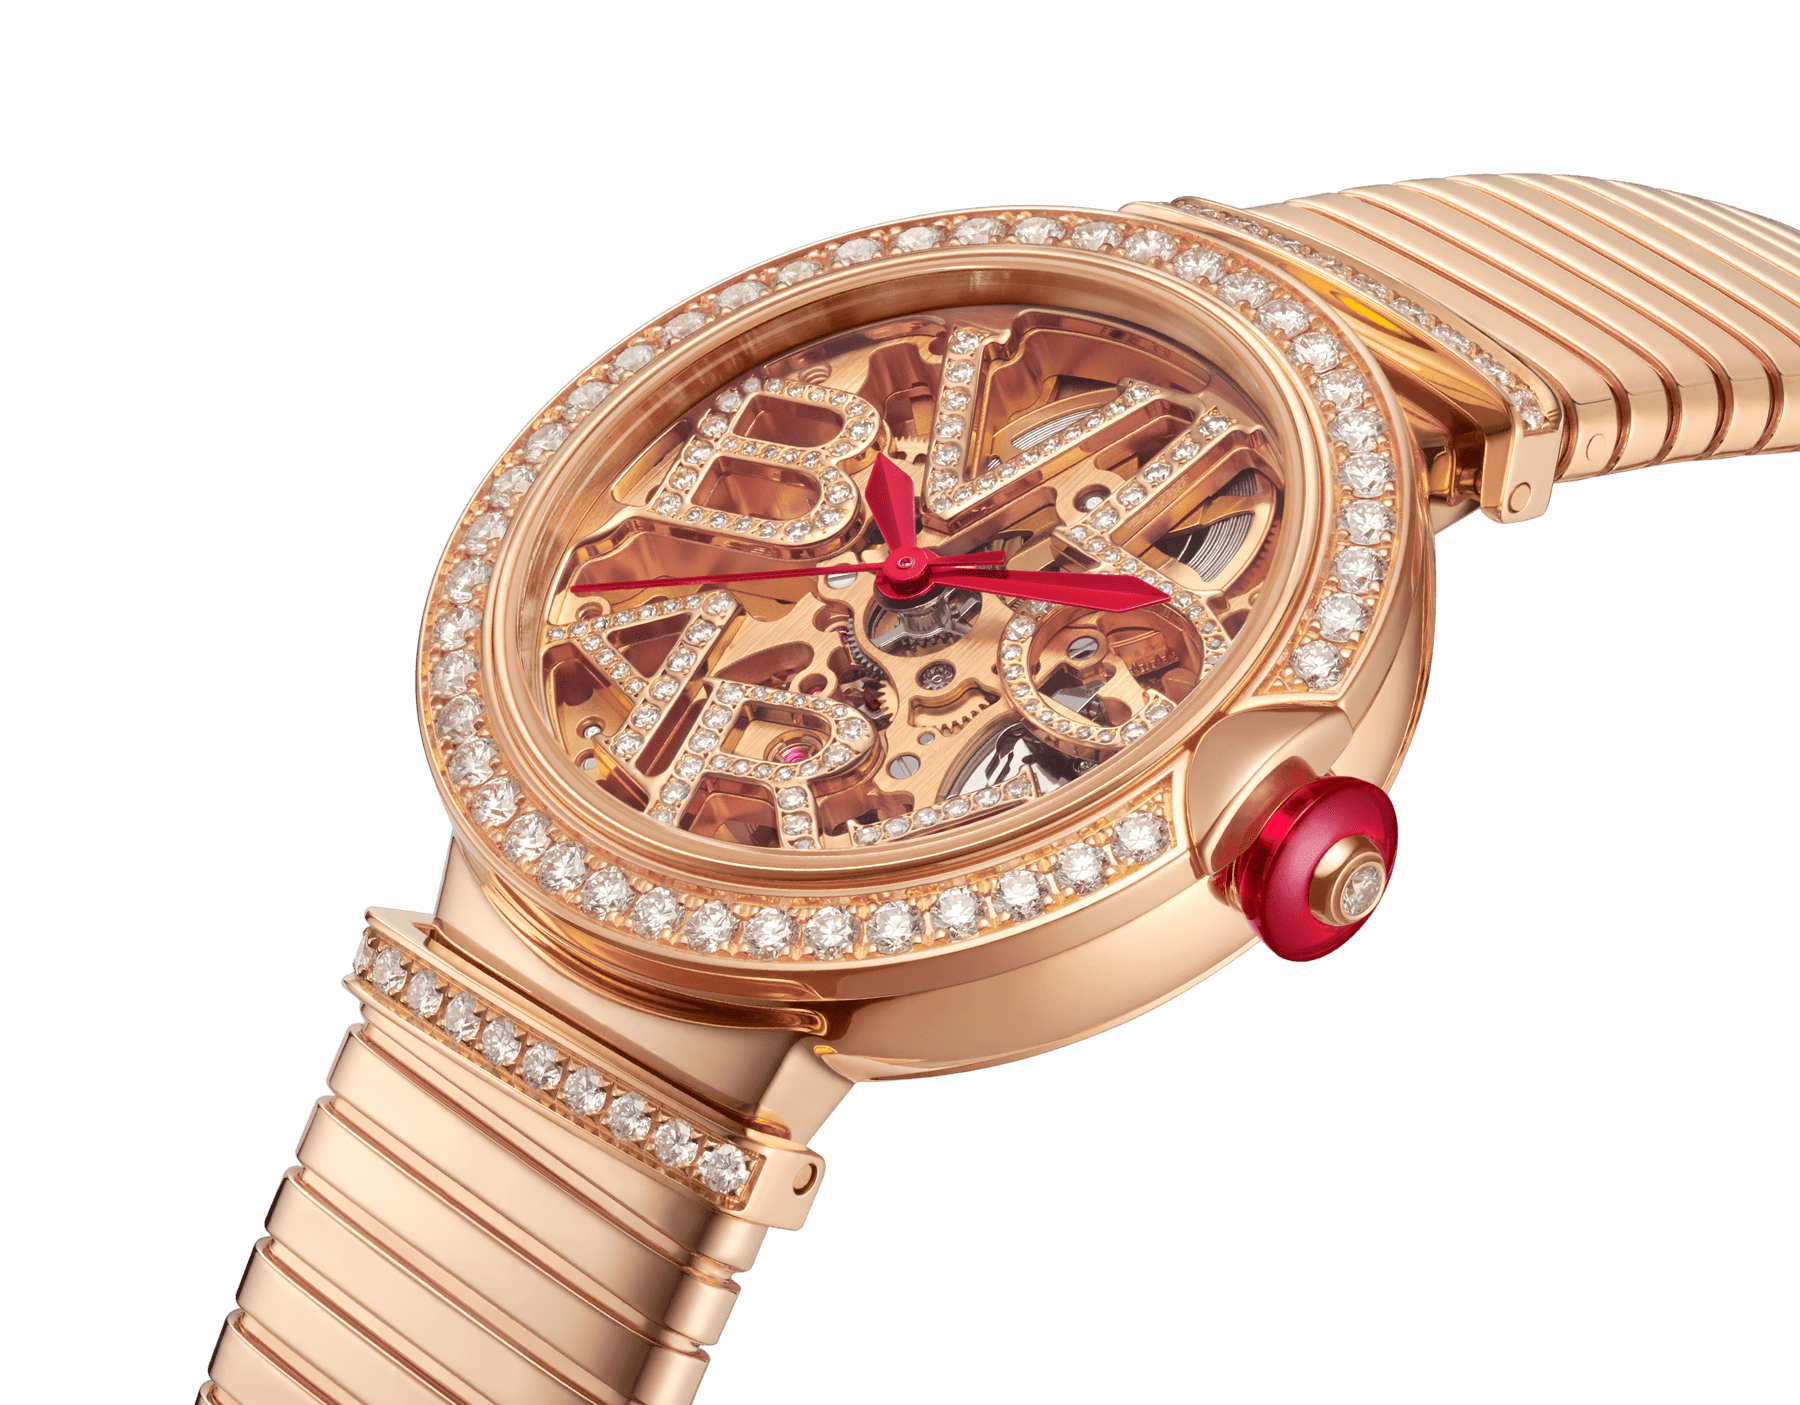 LVCEA Skeleton watch with mechanical manufacture movement, automatic winding and skeleton execution, 18 kt rose gold case, 18kt rose gold bezel set with diamonds, 18 kt rose gold openwork BVLGARI logo dial set with round brilliant-cut diamonds, red hands and 18 kt rose gold tubogas bracelet. Exclusive Edition for the United States 103134 image 2